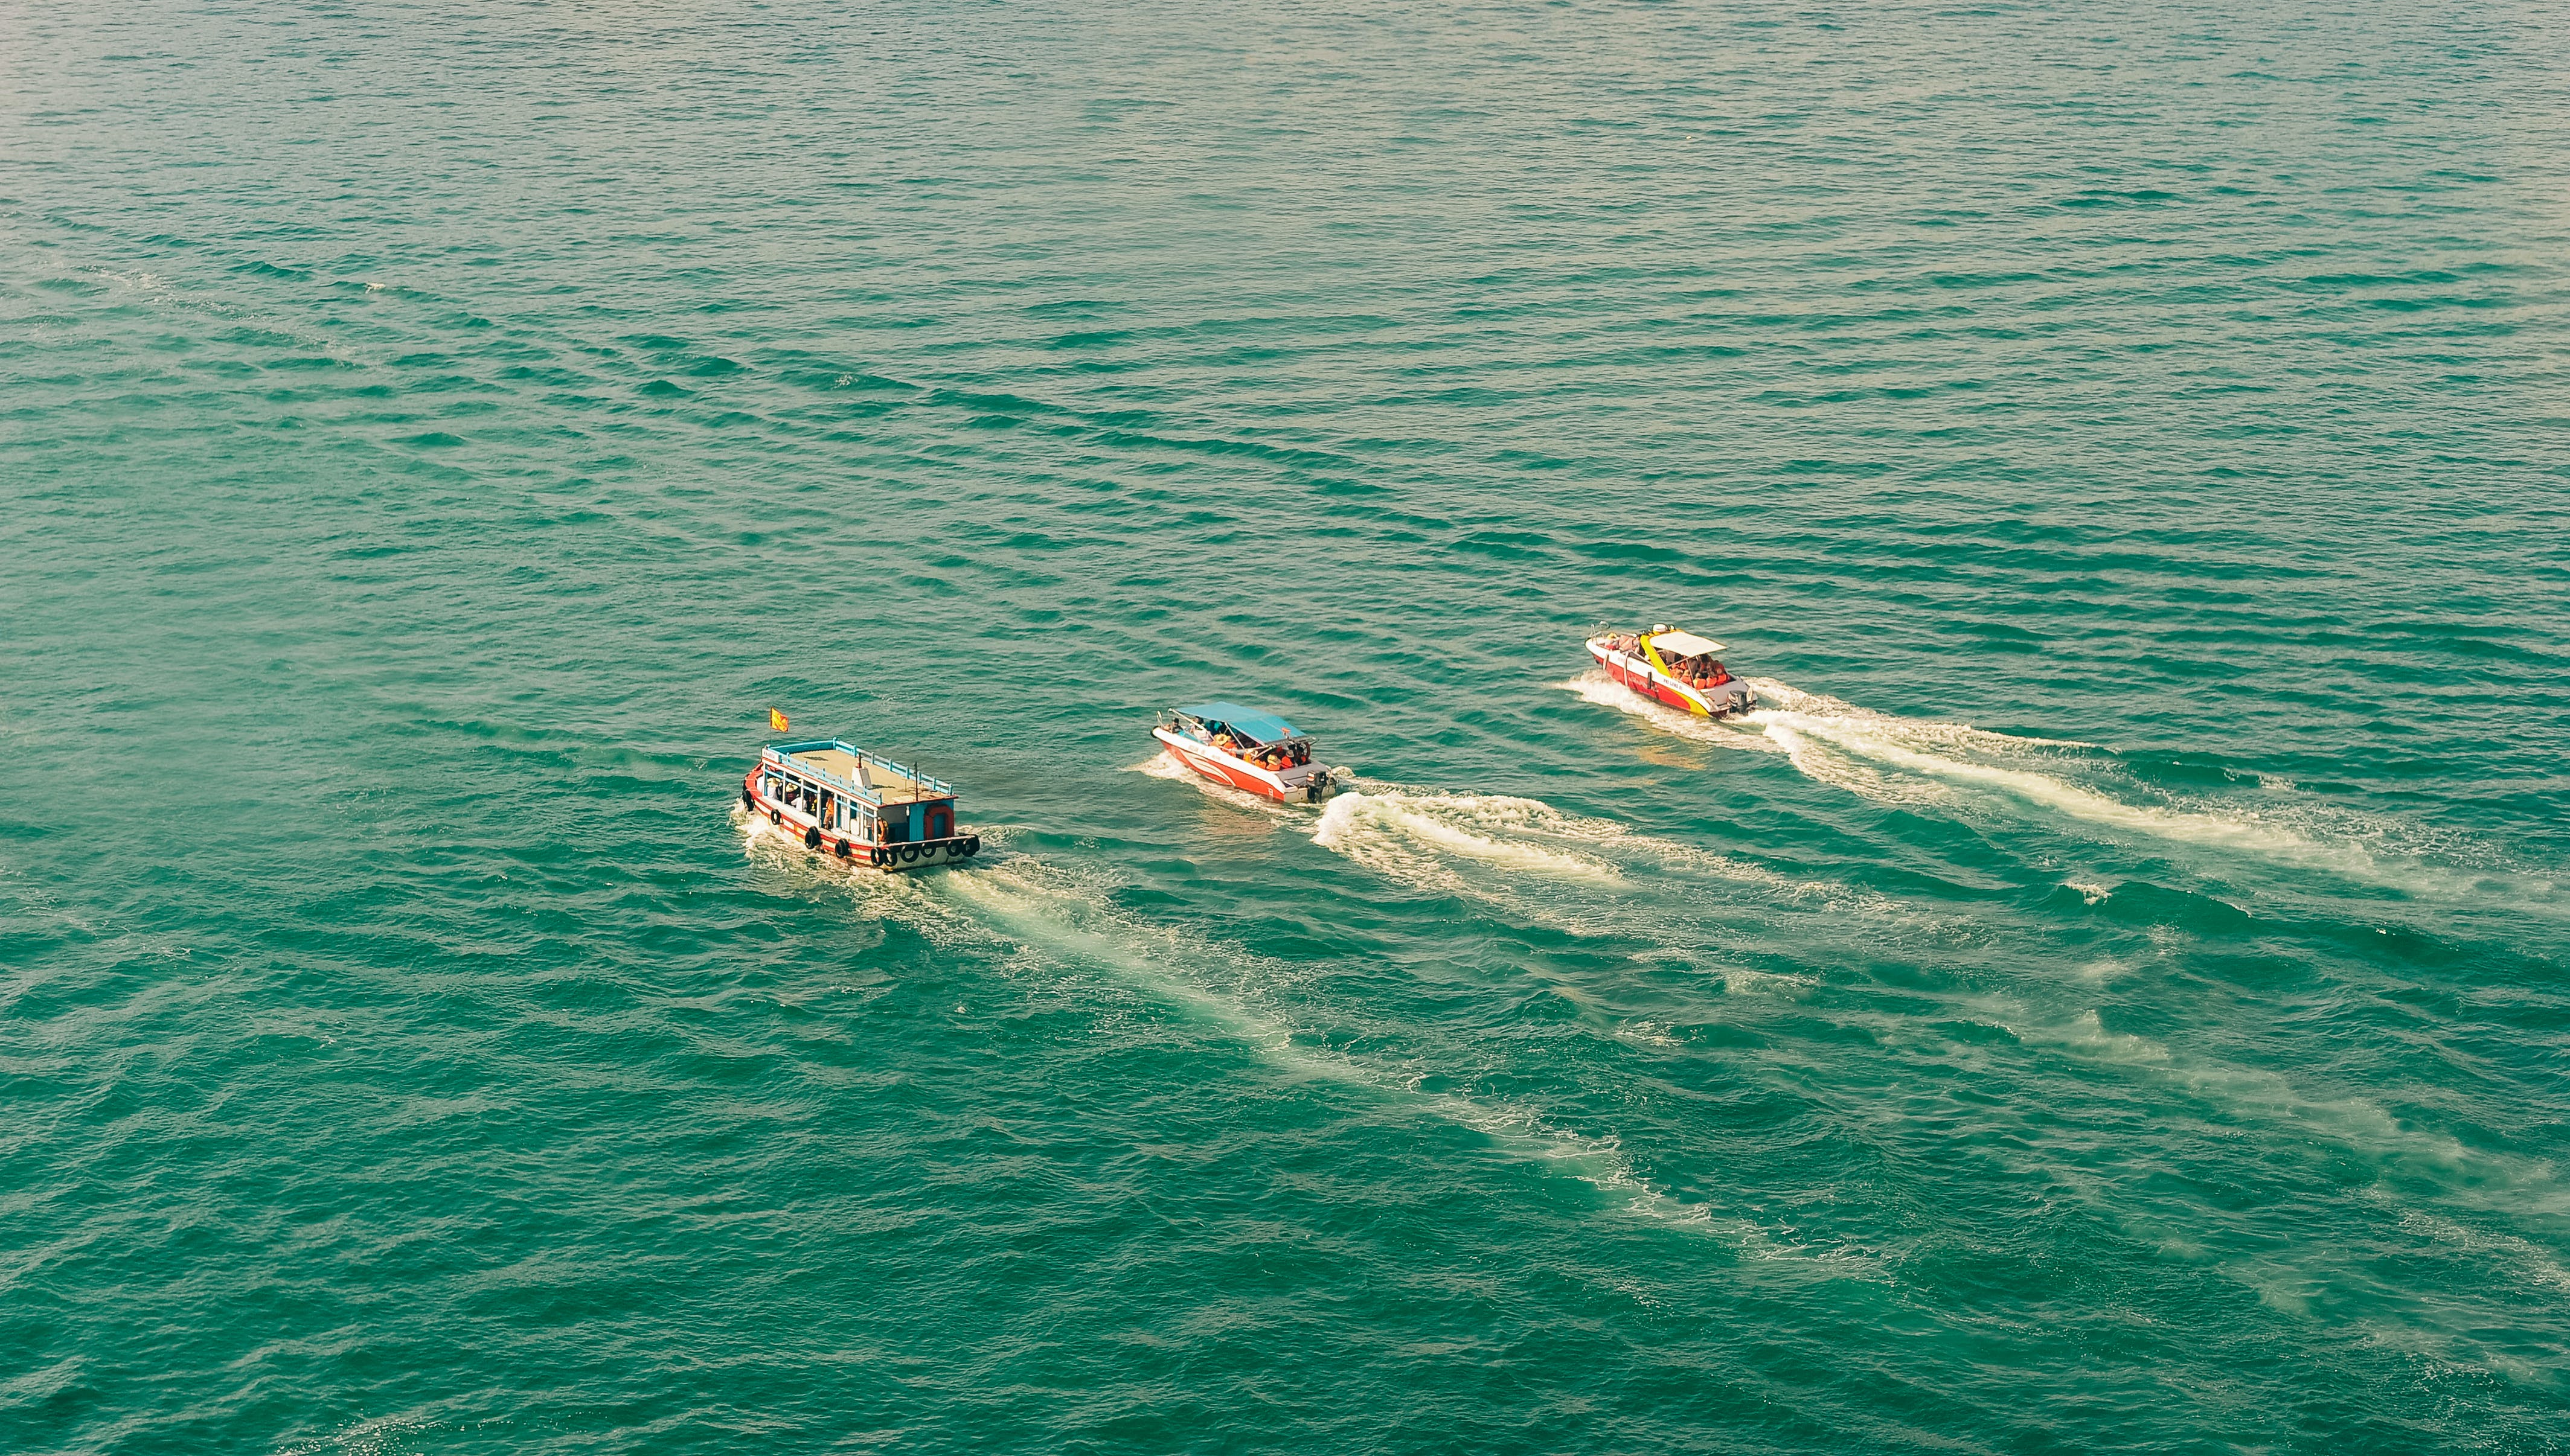 Three Speedboats Aerial Photography